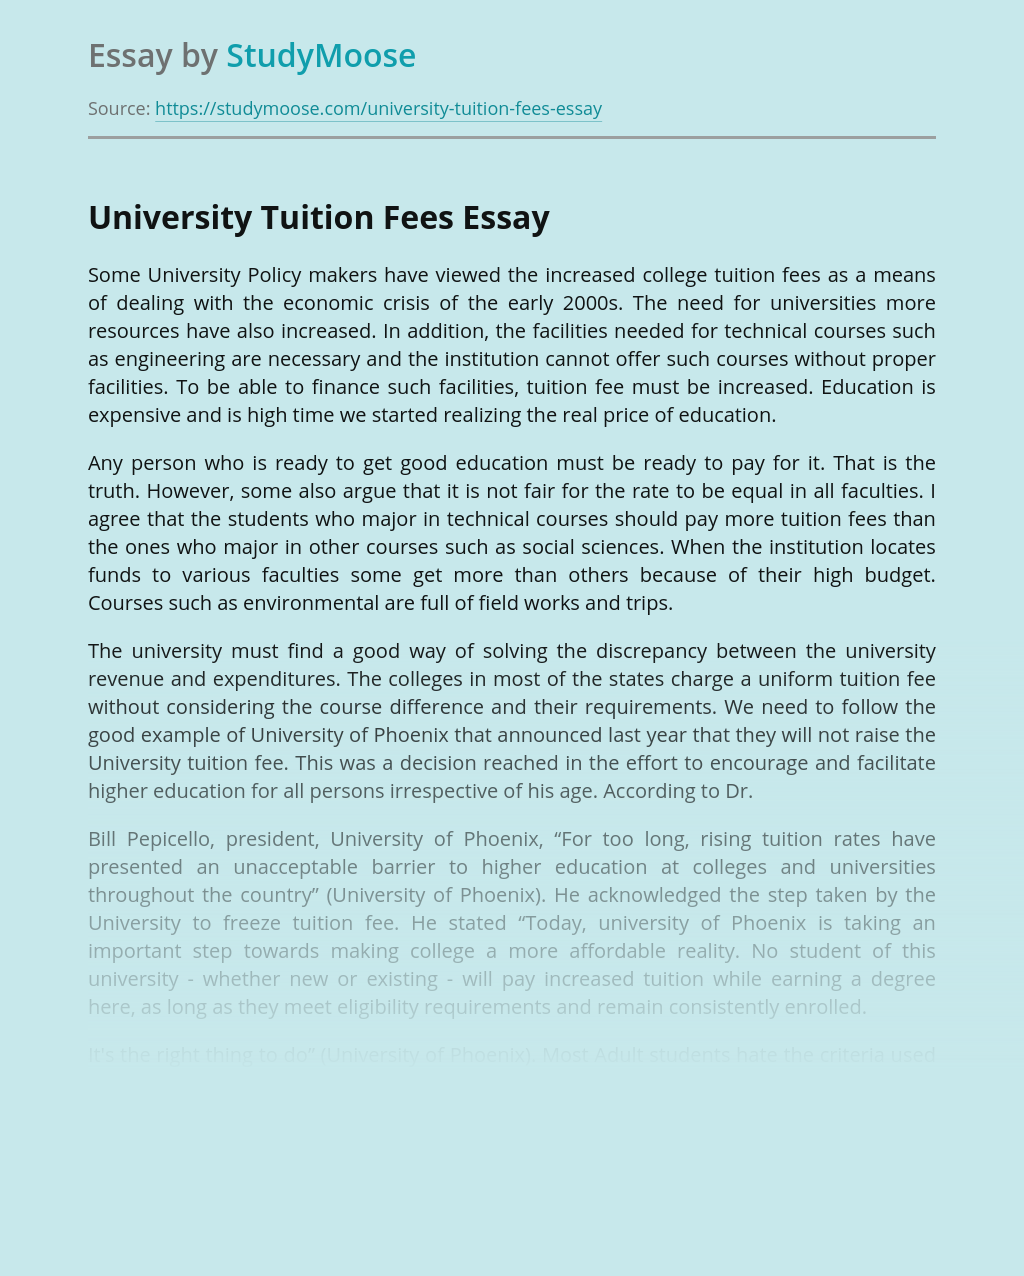 University Tuition Fees